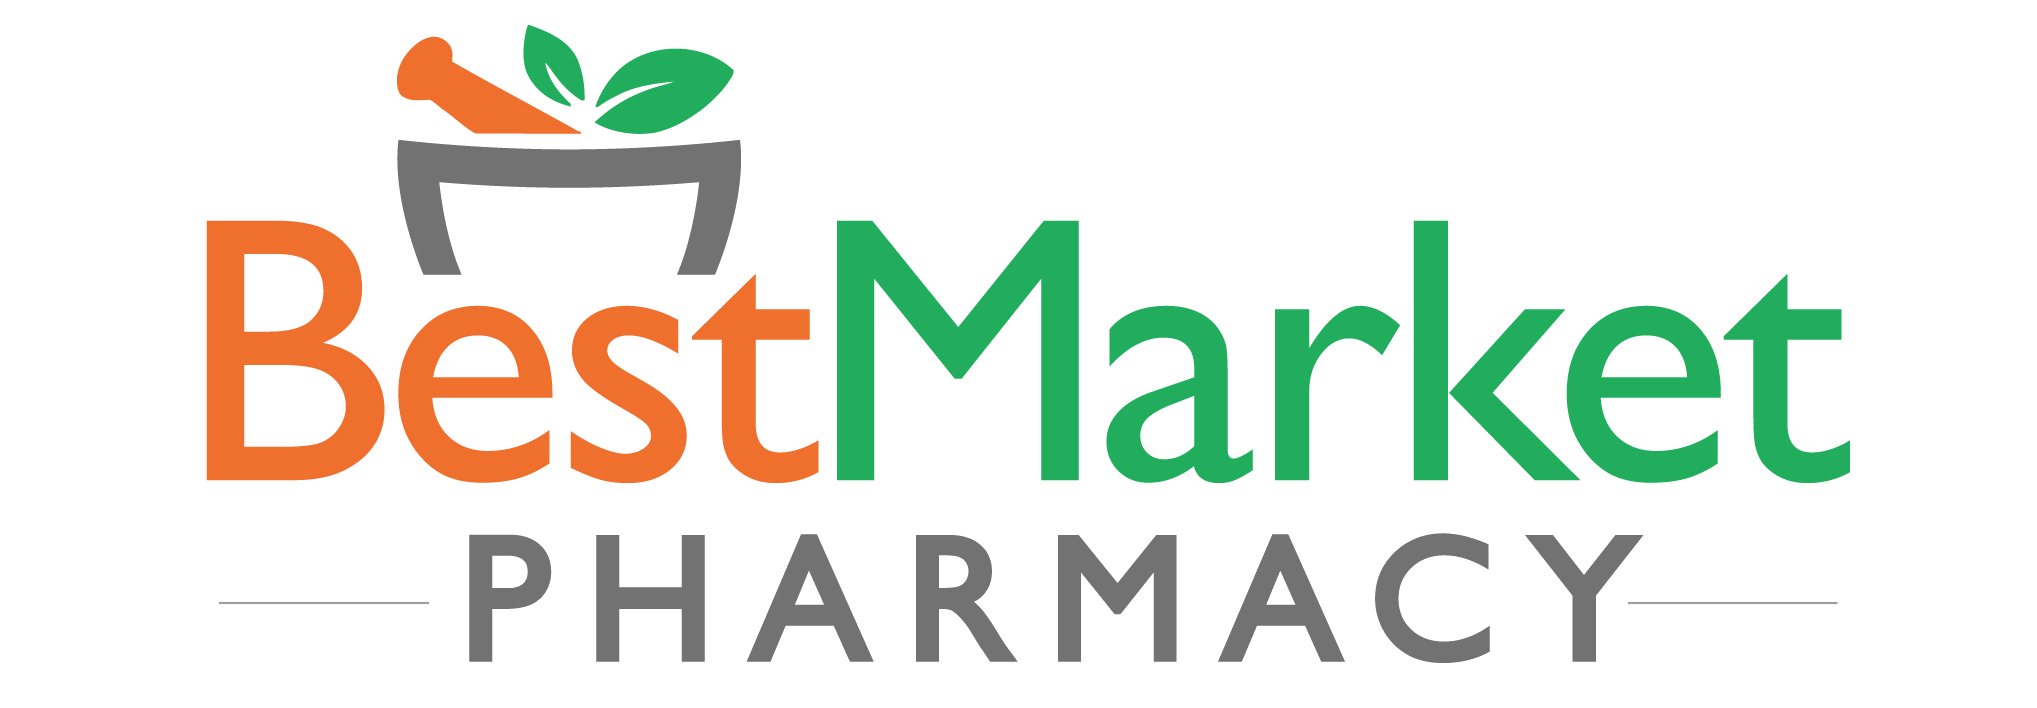 Best Market Pharmacy